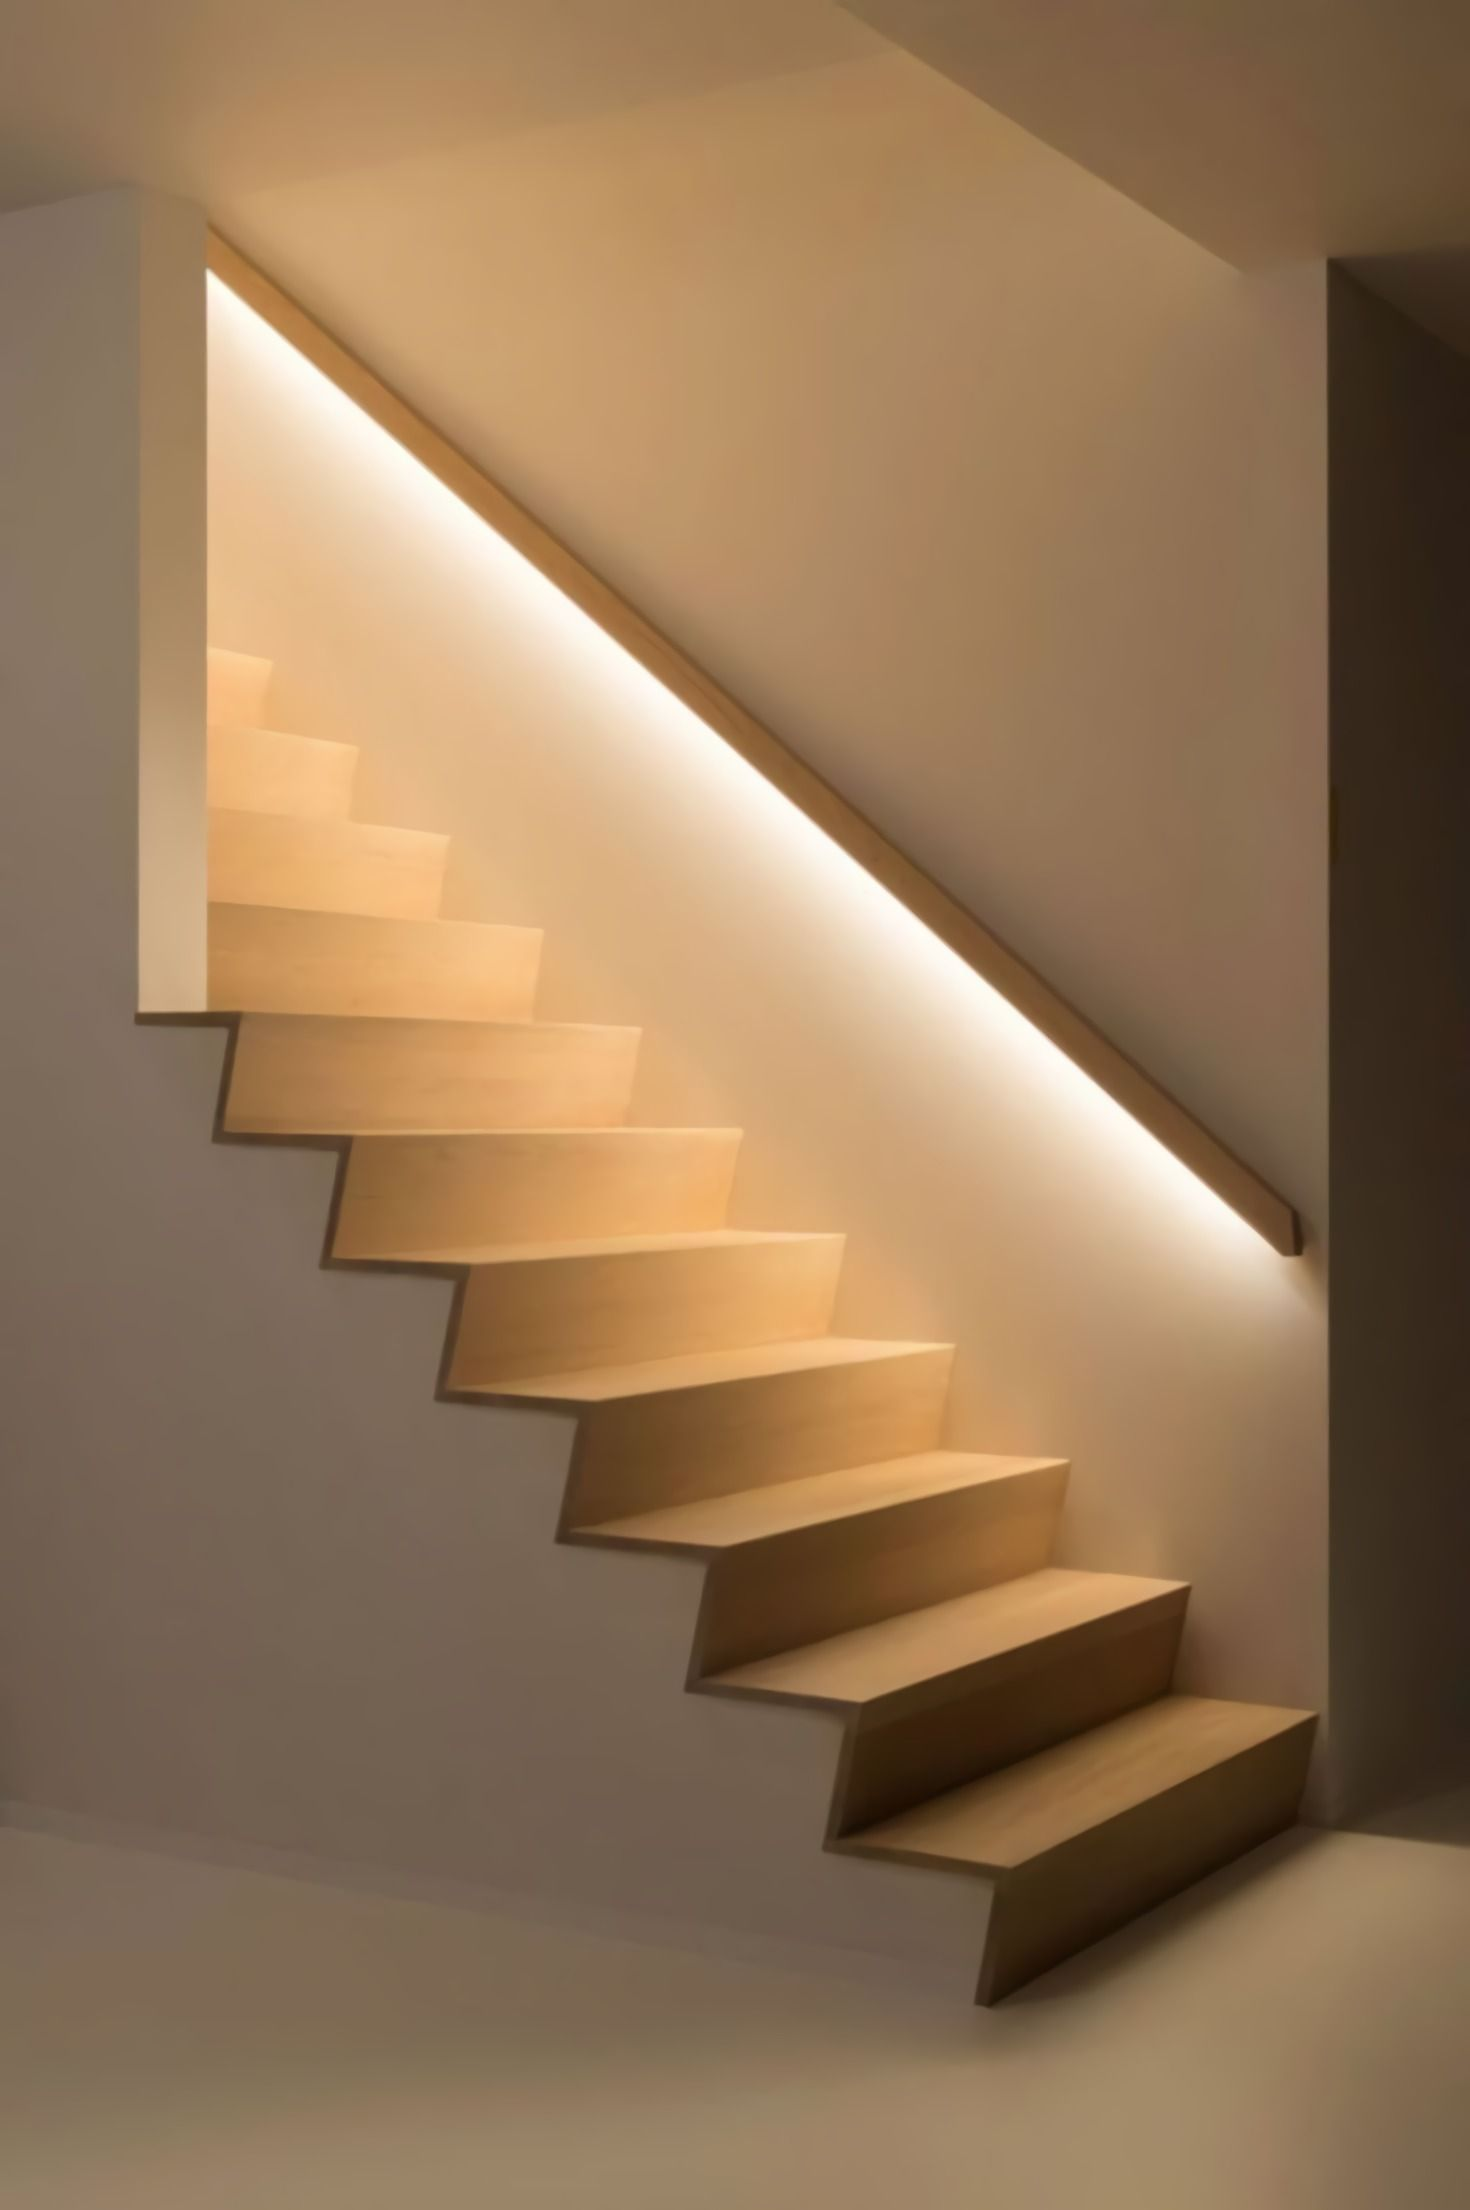 17 Light Stairs Ideas You Can Start Using Today In 2020 Home